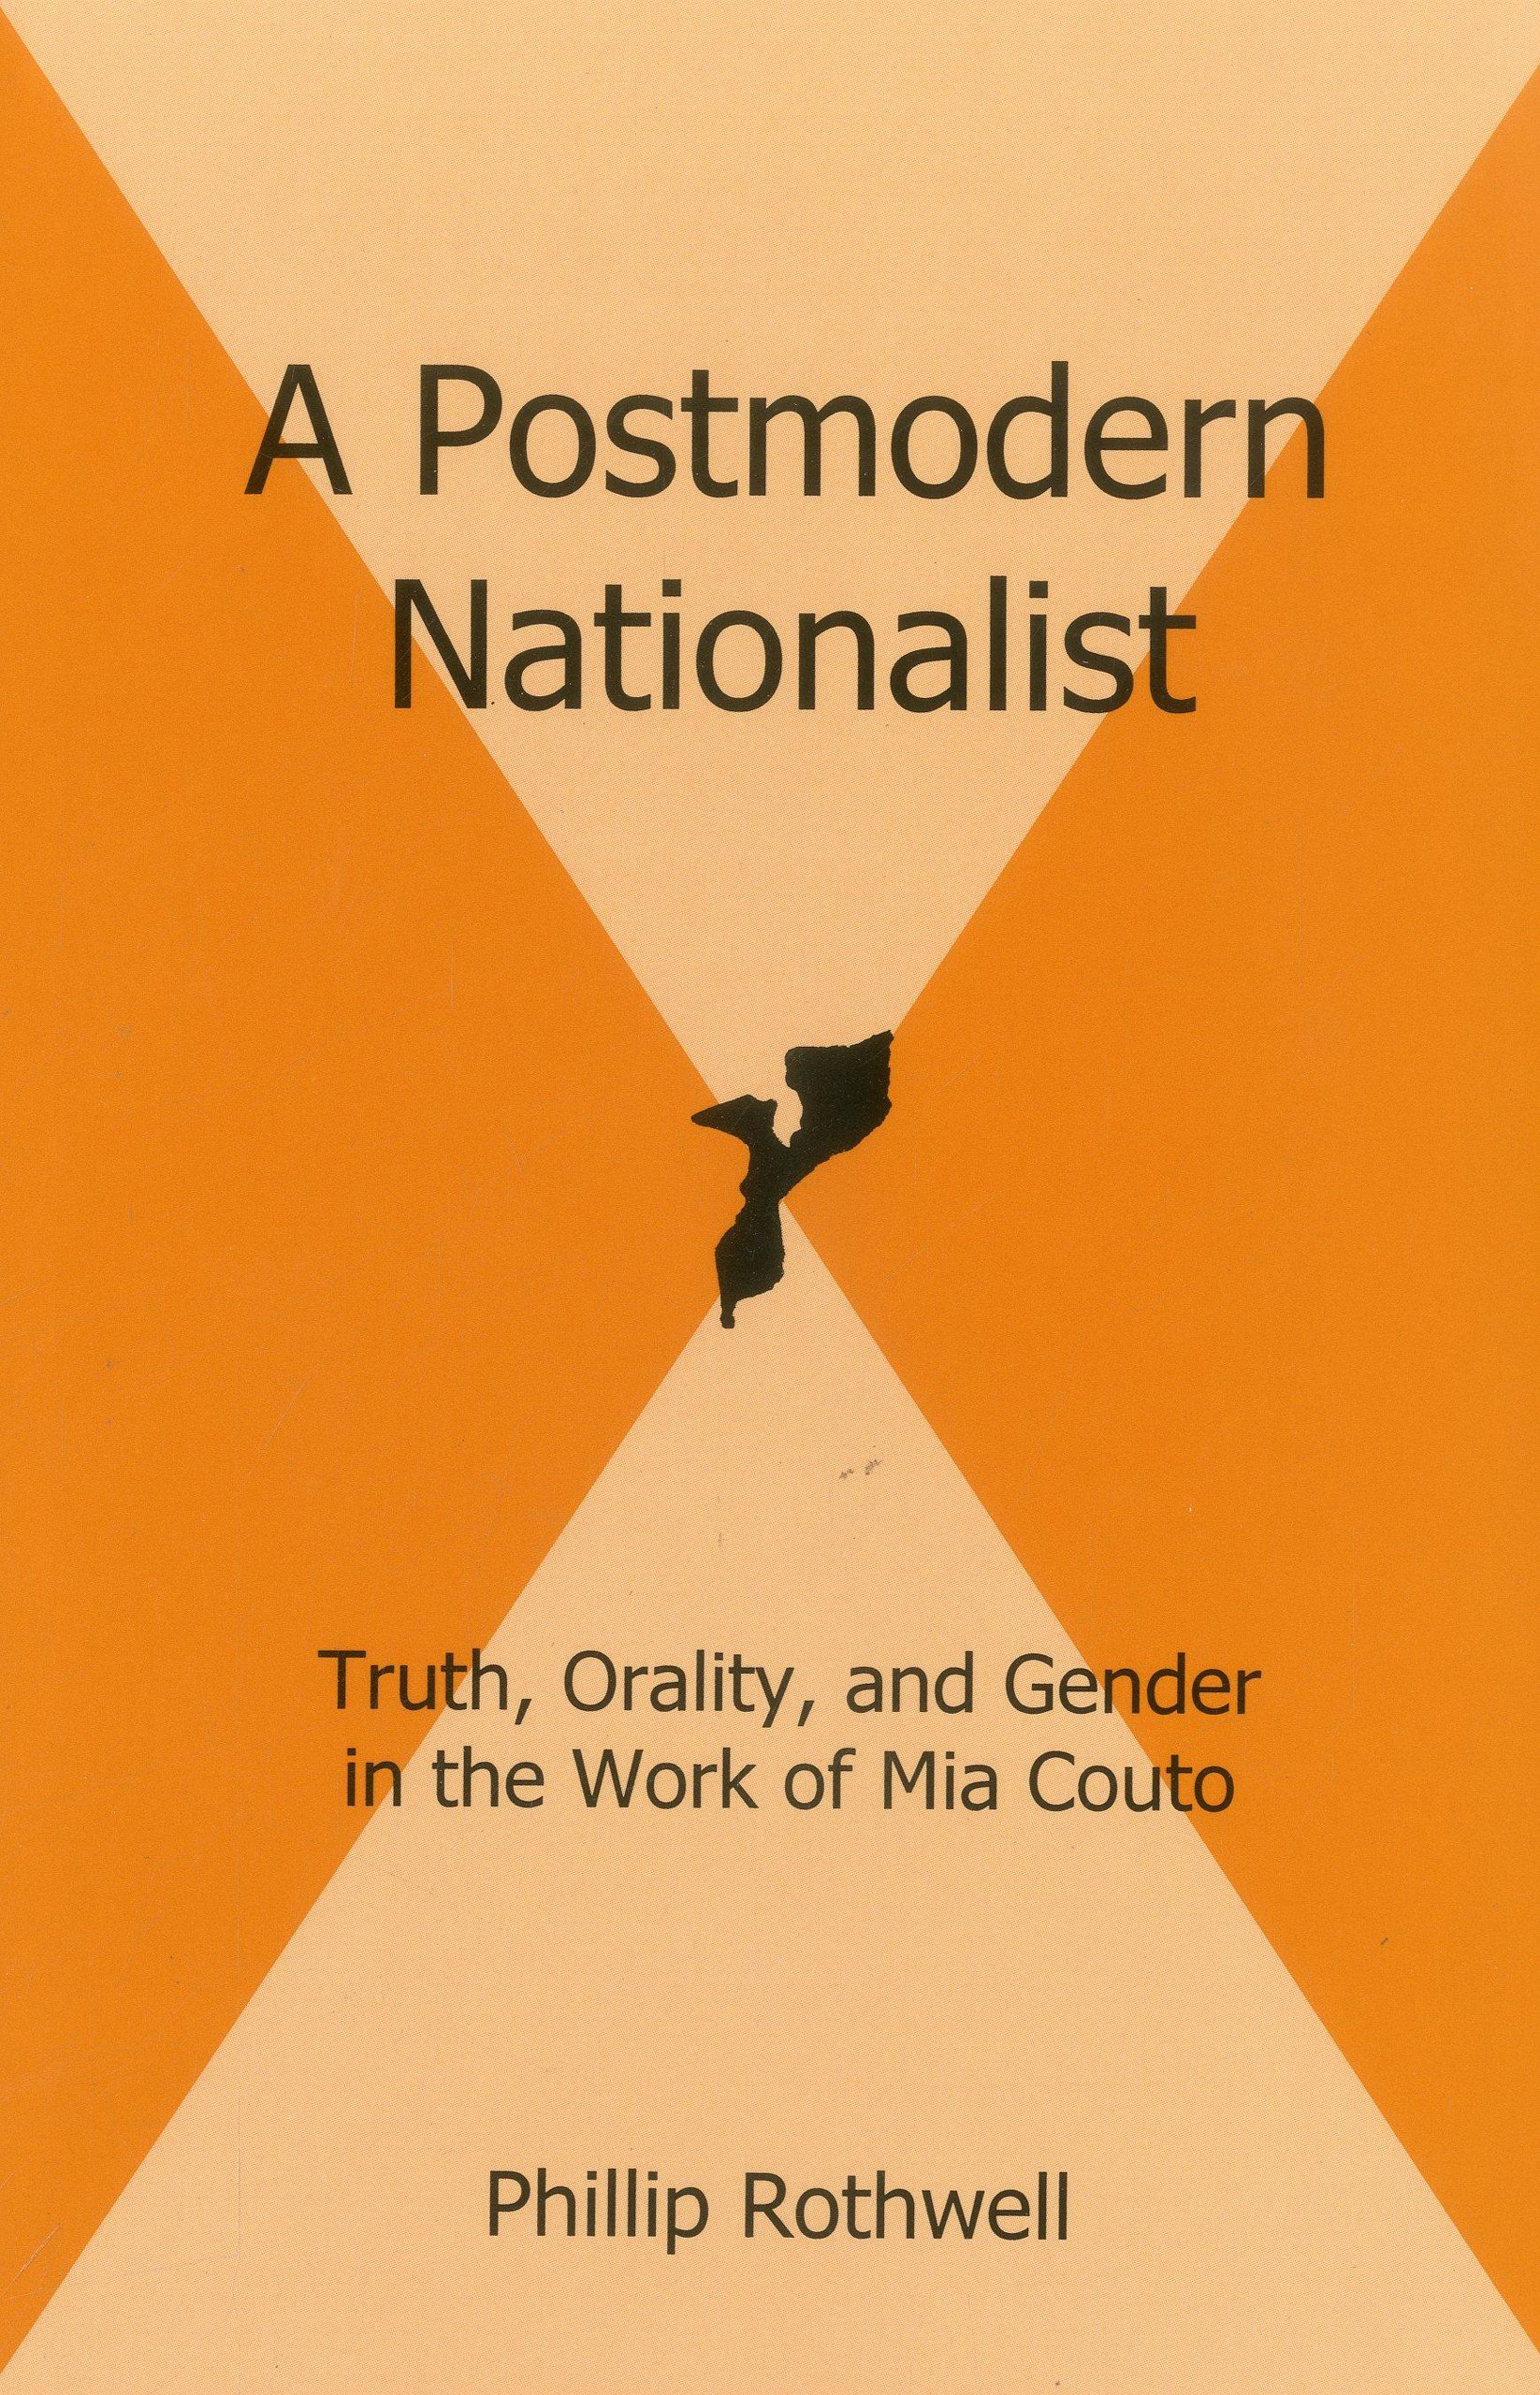 Download A Postmodern Nationalist: Truth, Orality, and Gender in the Work of Mia Couto pdf